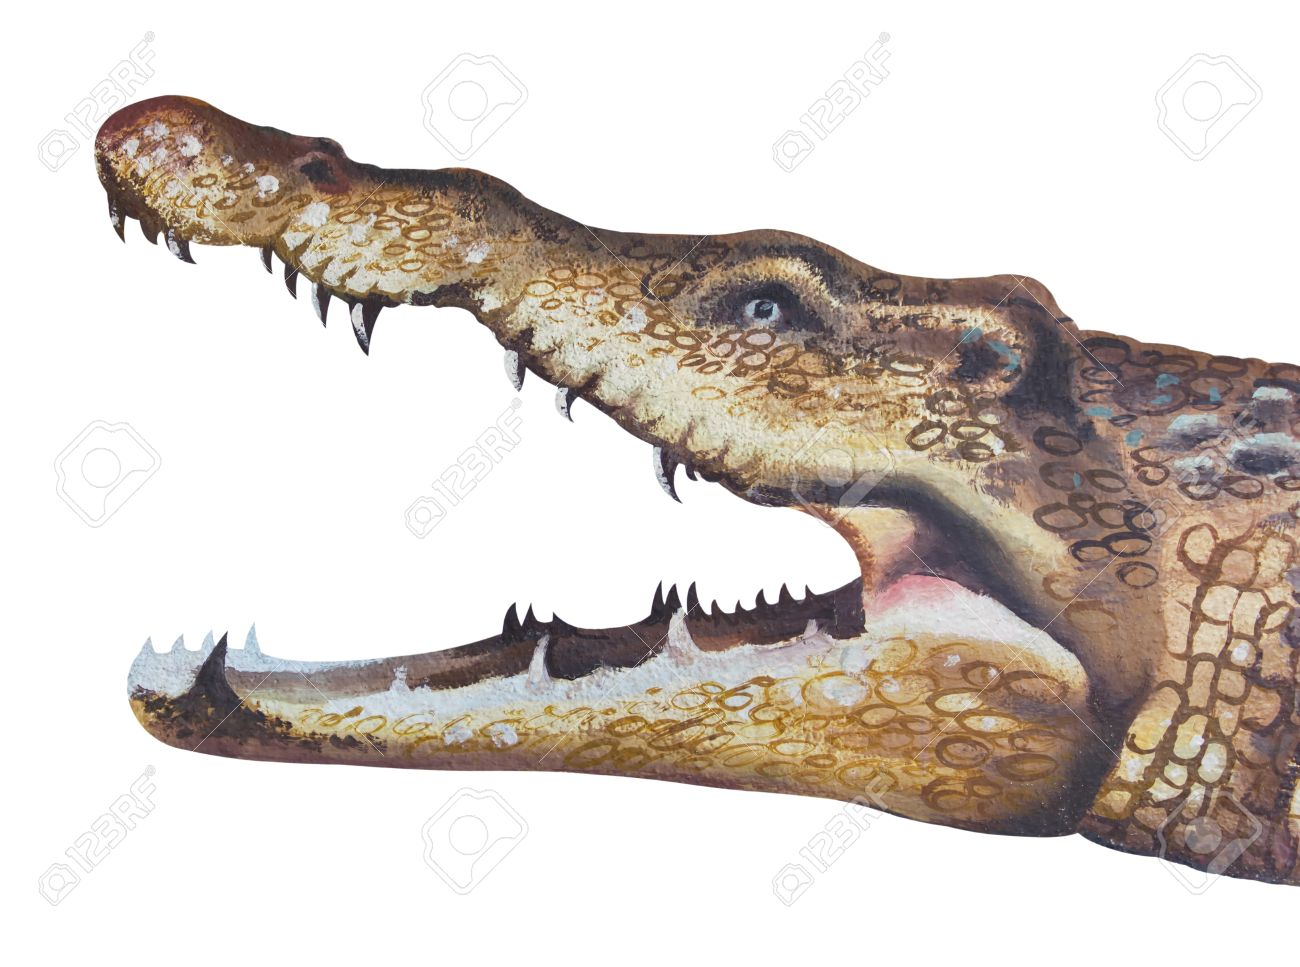 1300x967 Isolates Of Drawing Crocodile Stock Photo, Picture And Royalty